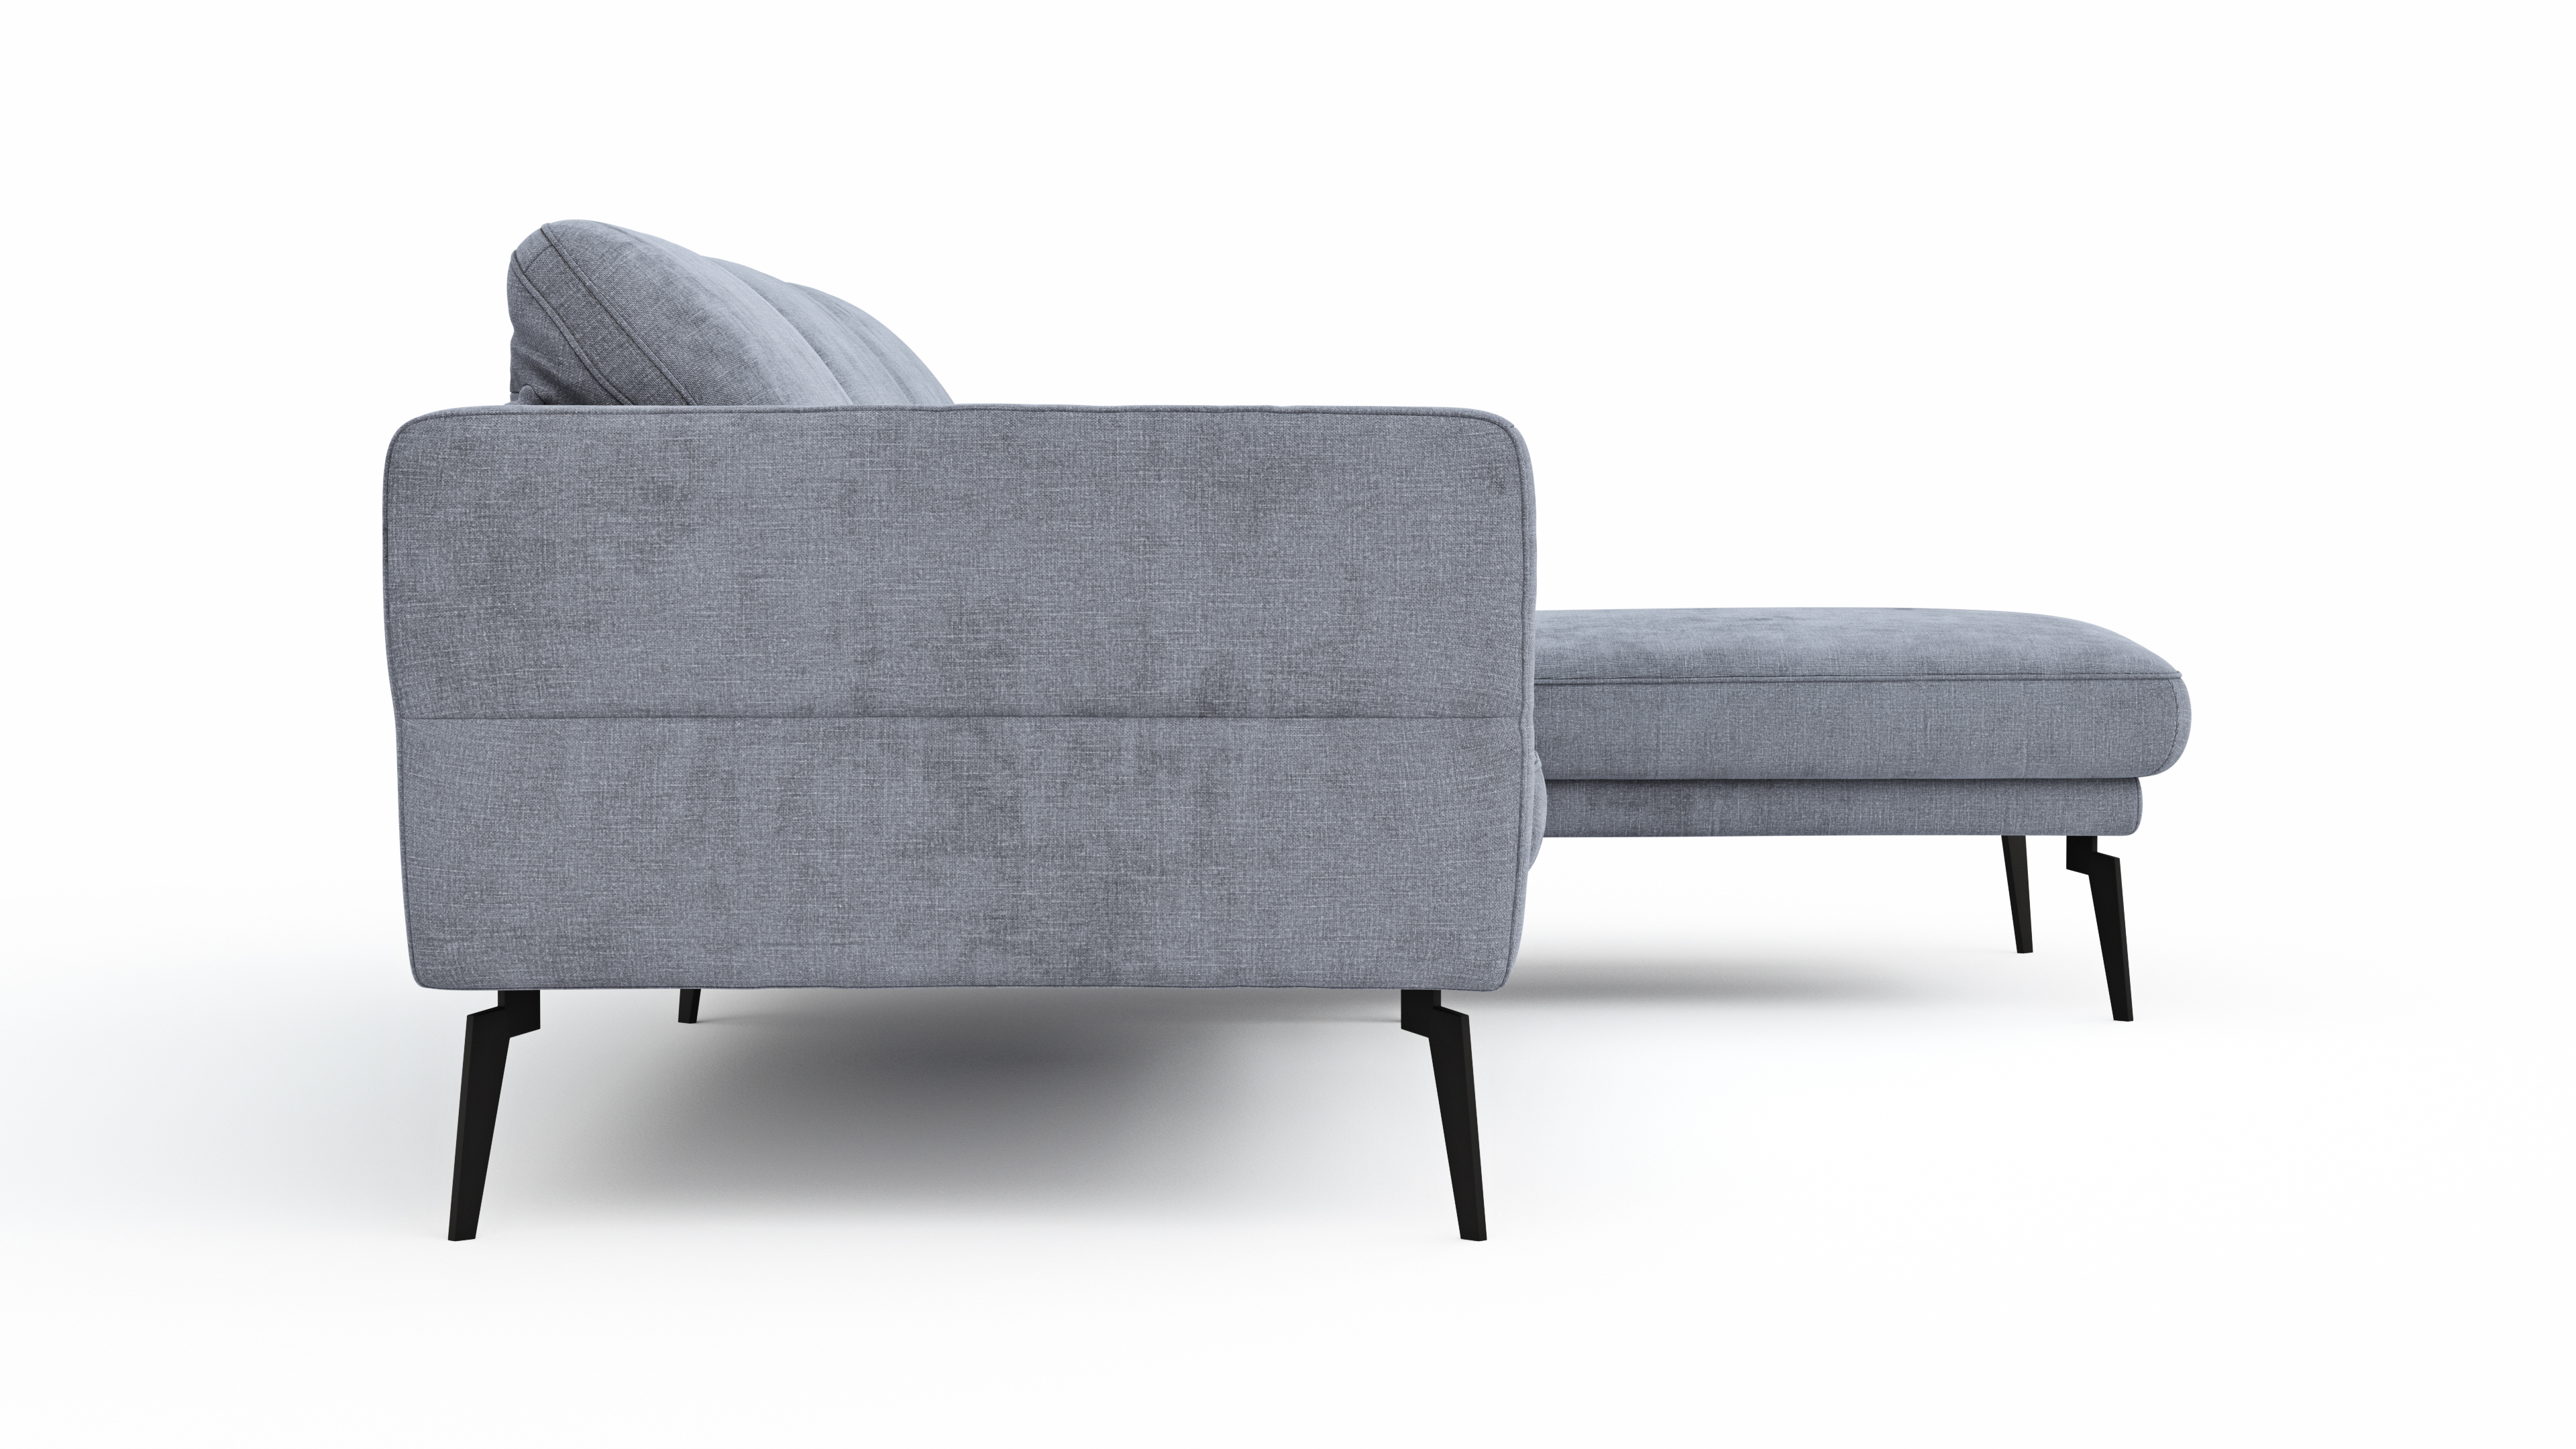 Global Select Ecksofa Estrela freisteller 1 104244 | Homepoet